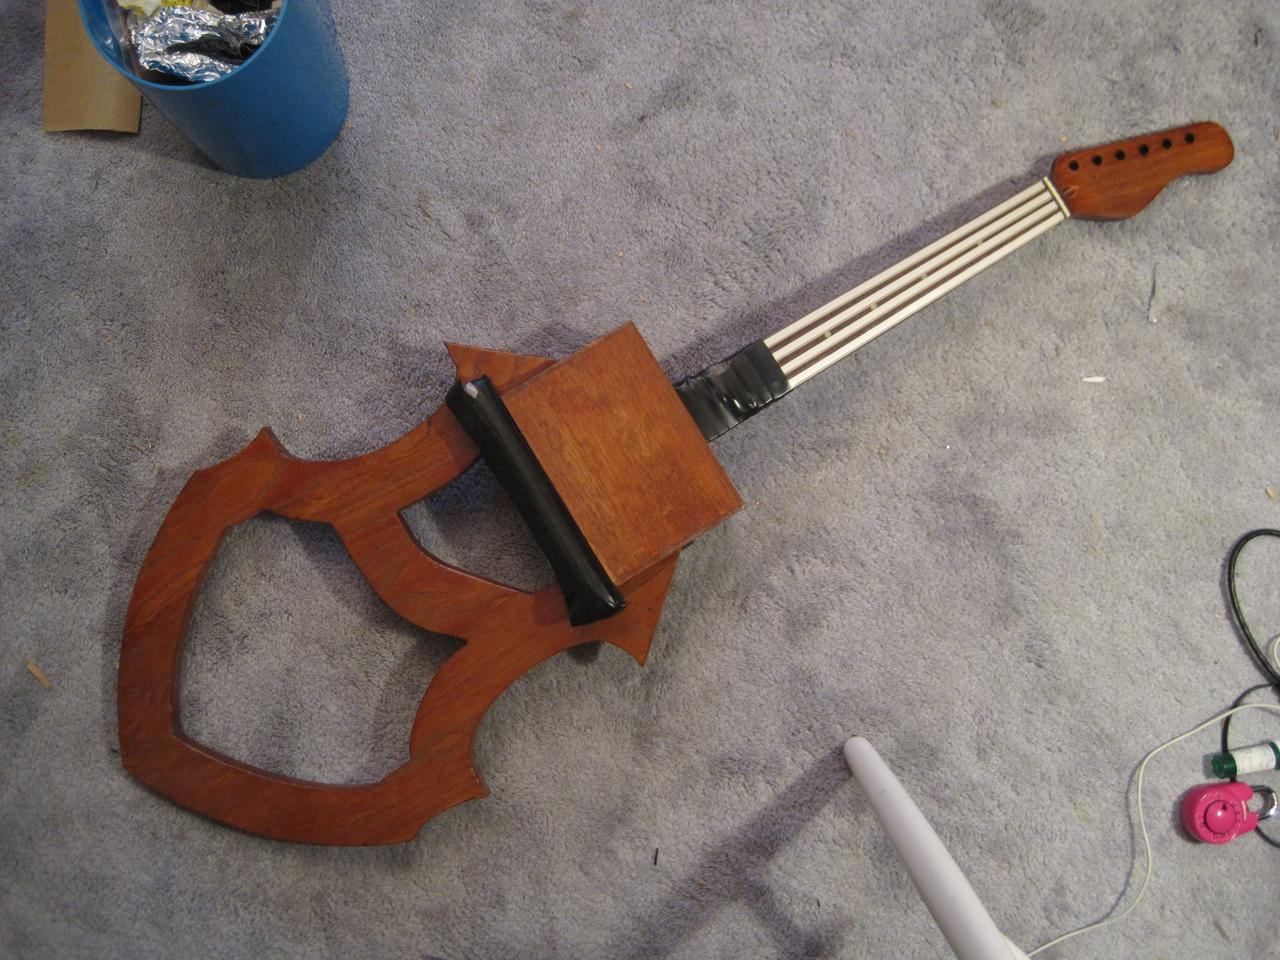 Early prototype of the Magnetic Cello, with four resistive ribbons on the neck